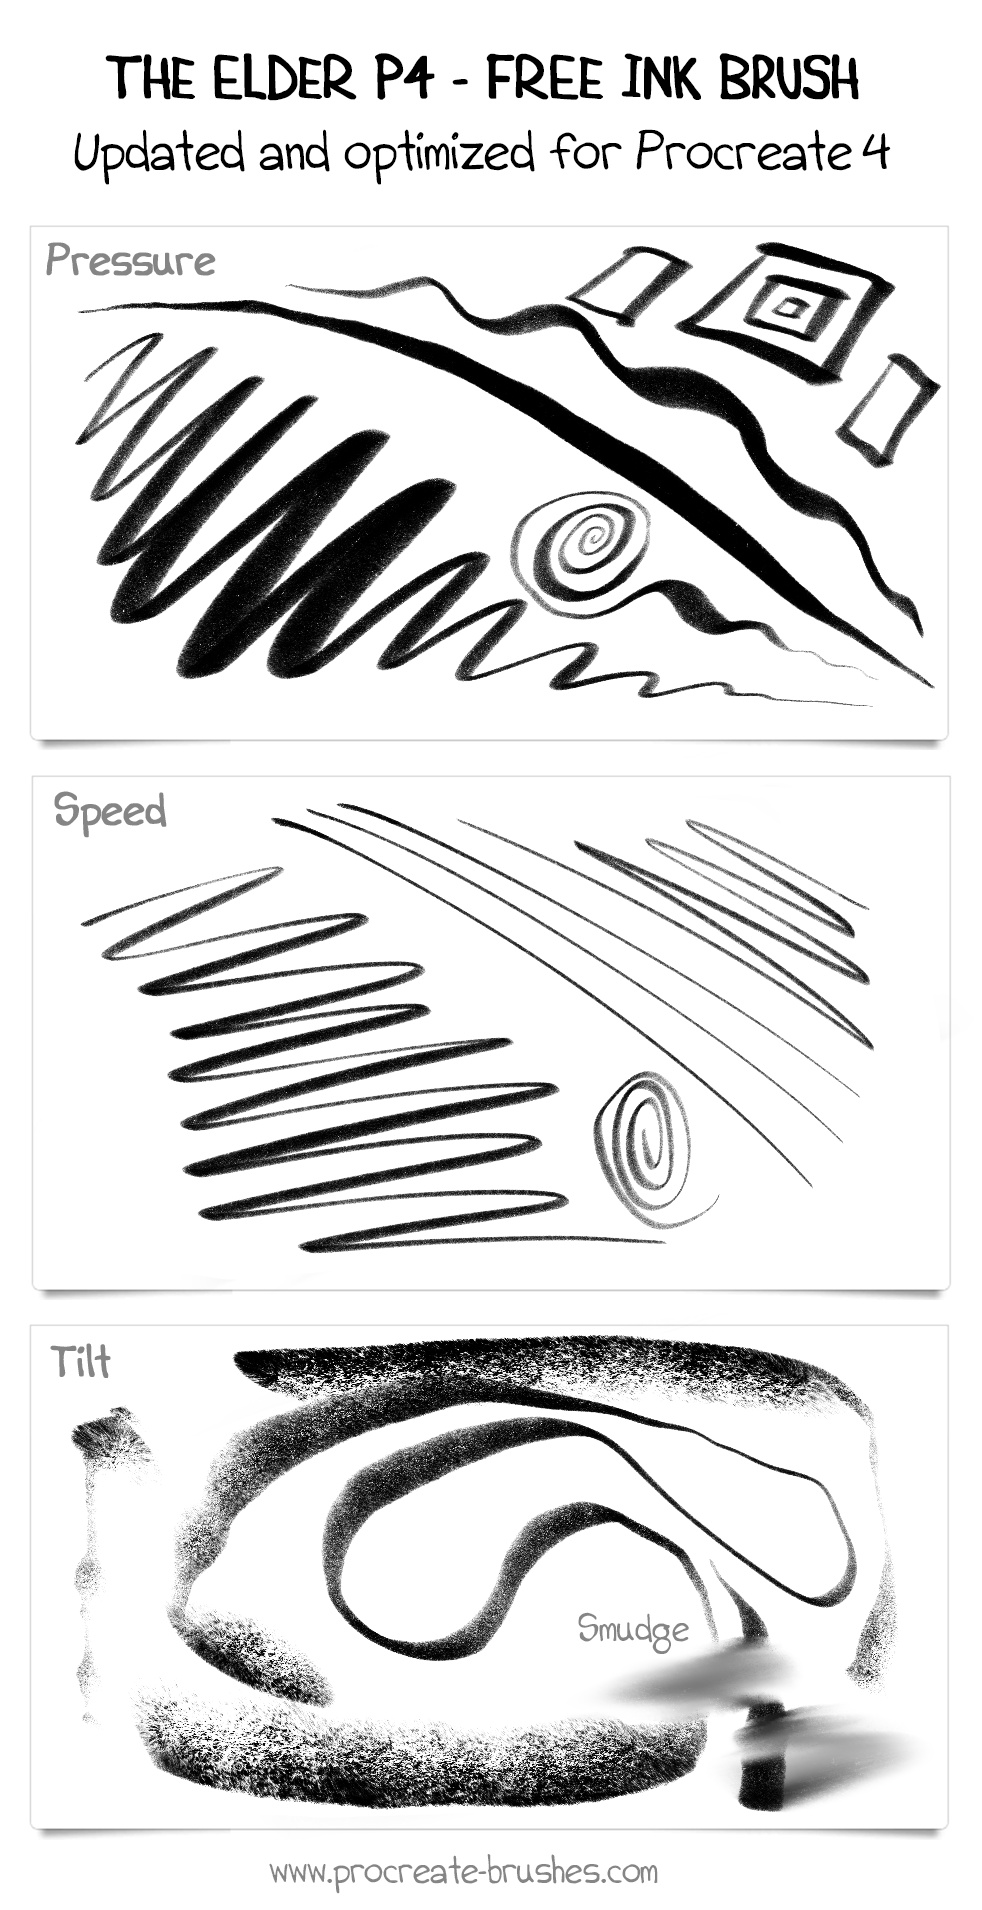 FREE Comic Ink Brush Set for Procreate: 16+ Inking and